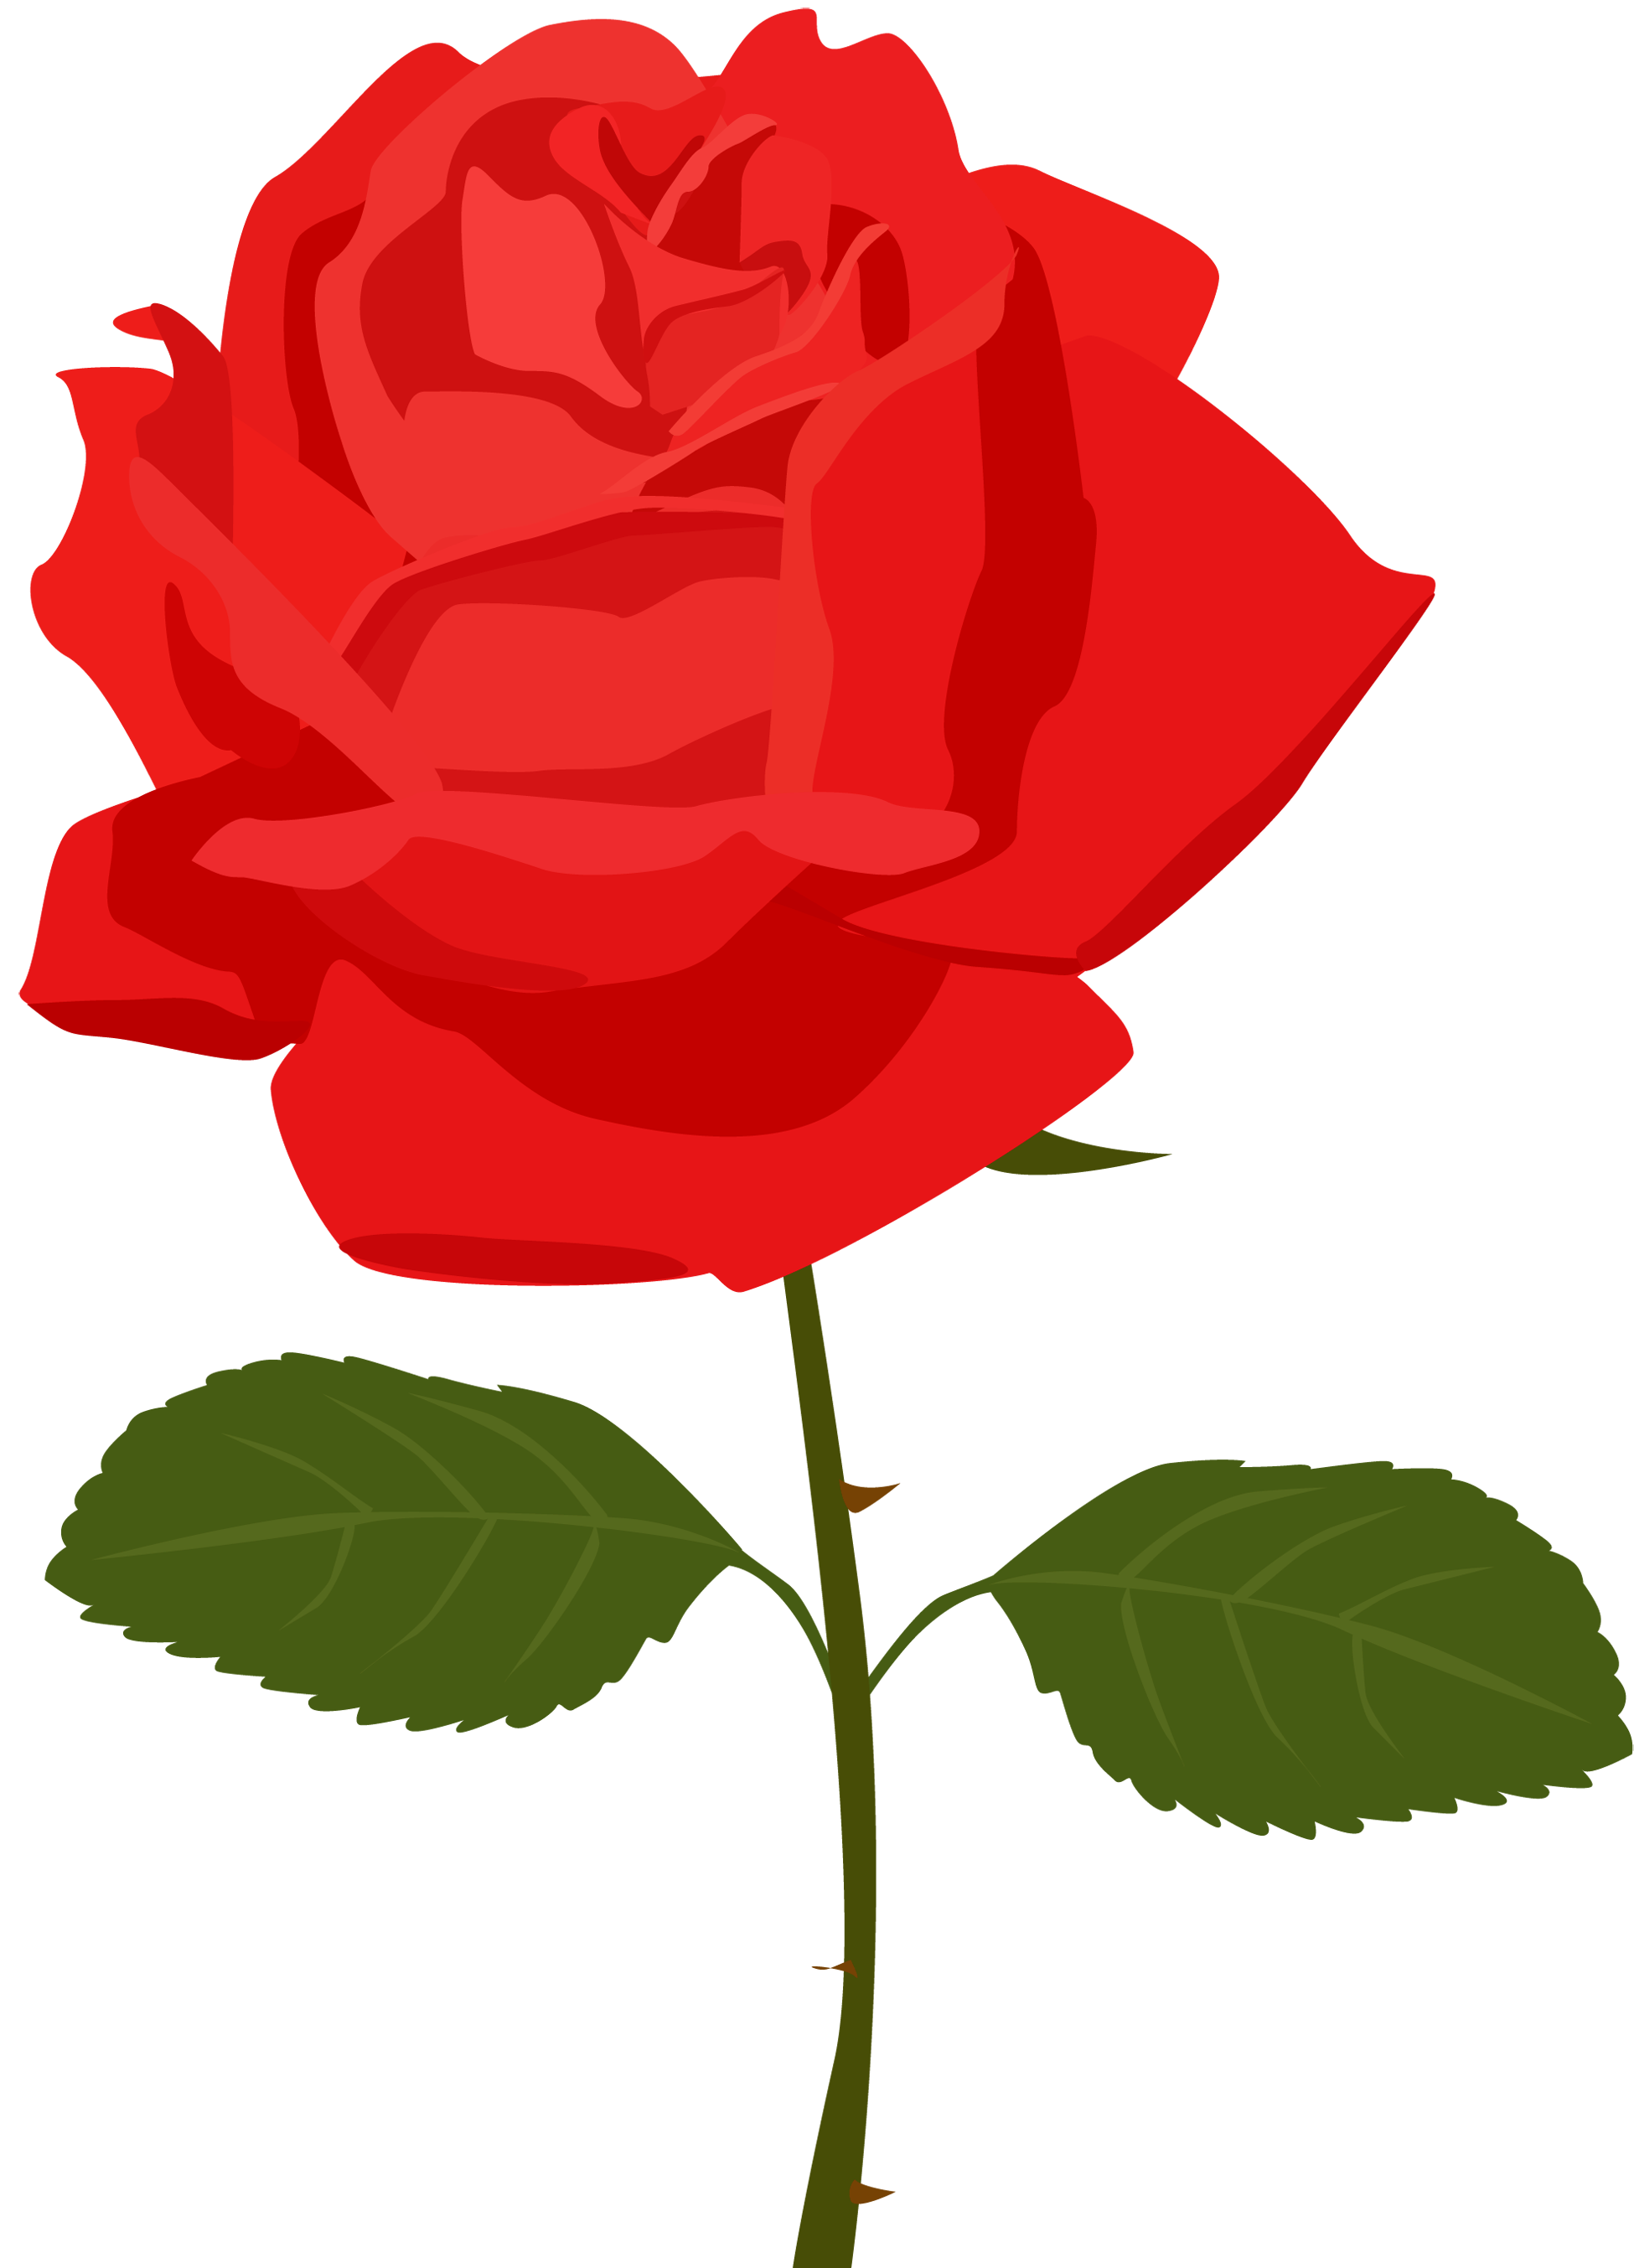 1950x2707 Transparent Red Rose Png Pictureu200b Gallery Yopriceville